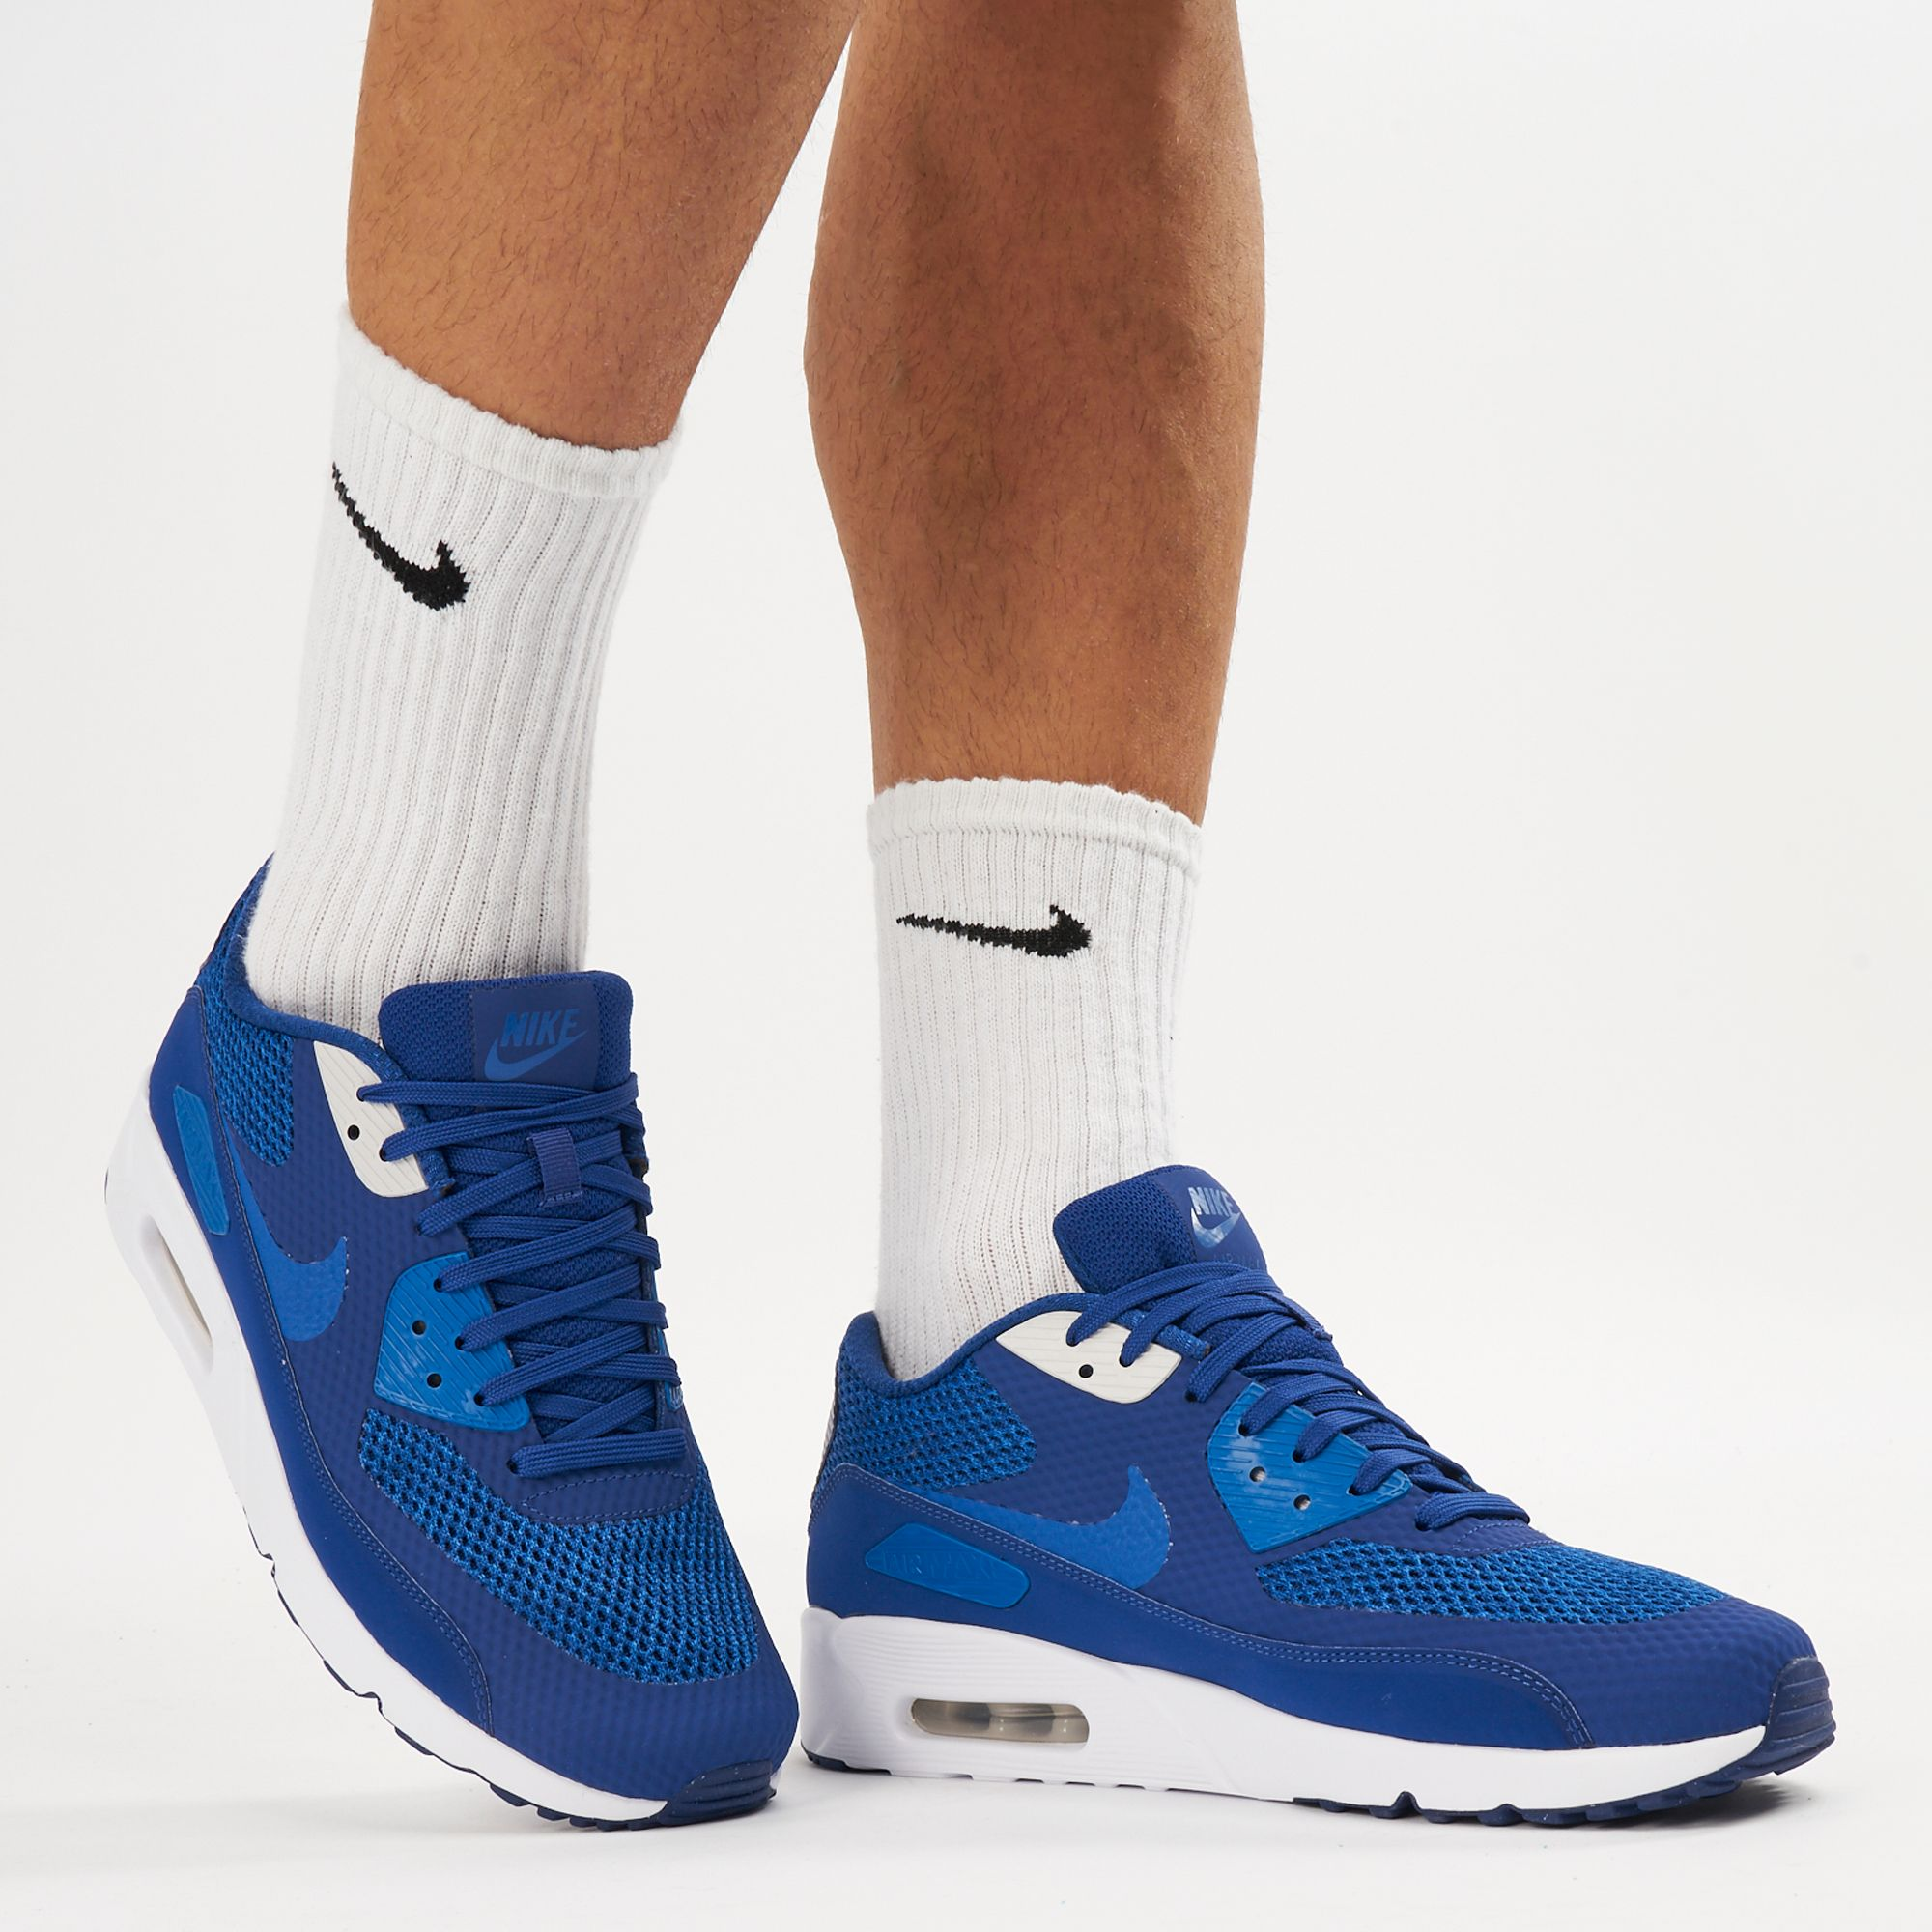 Nike Air Max 90 Ultra 2.0 Essential Shoe | Sneakers | Shoes